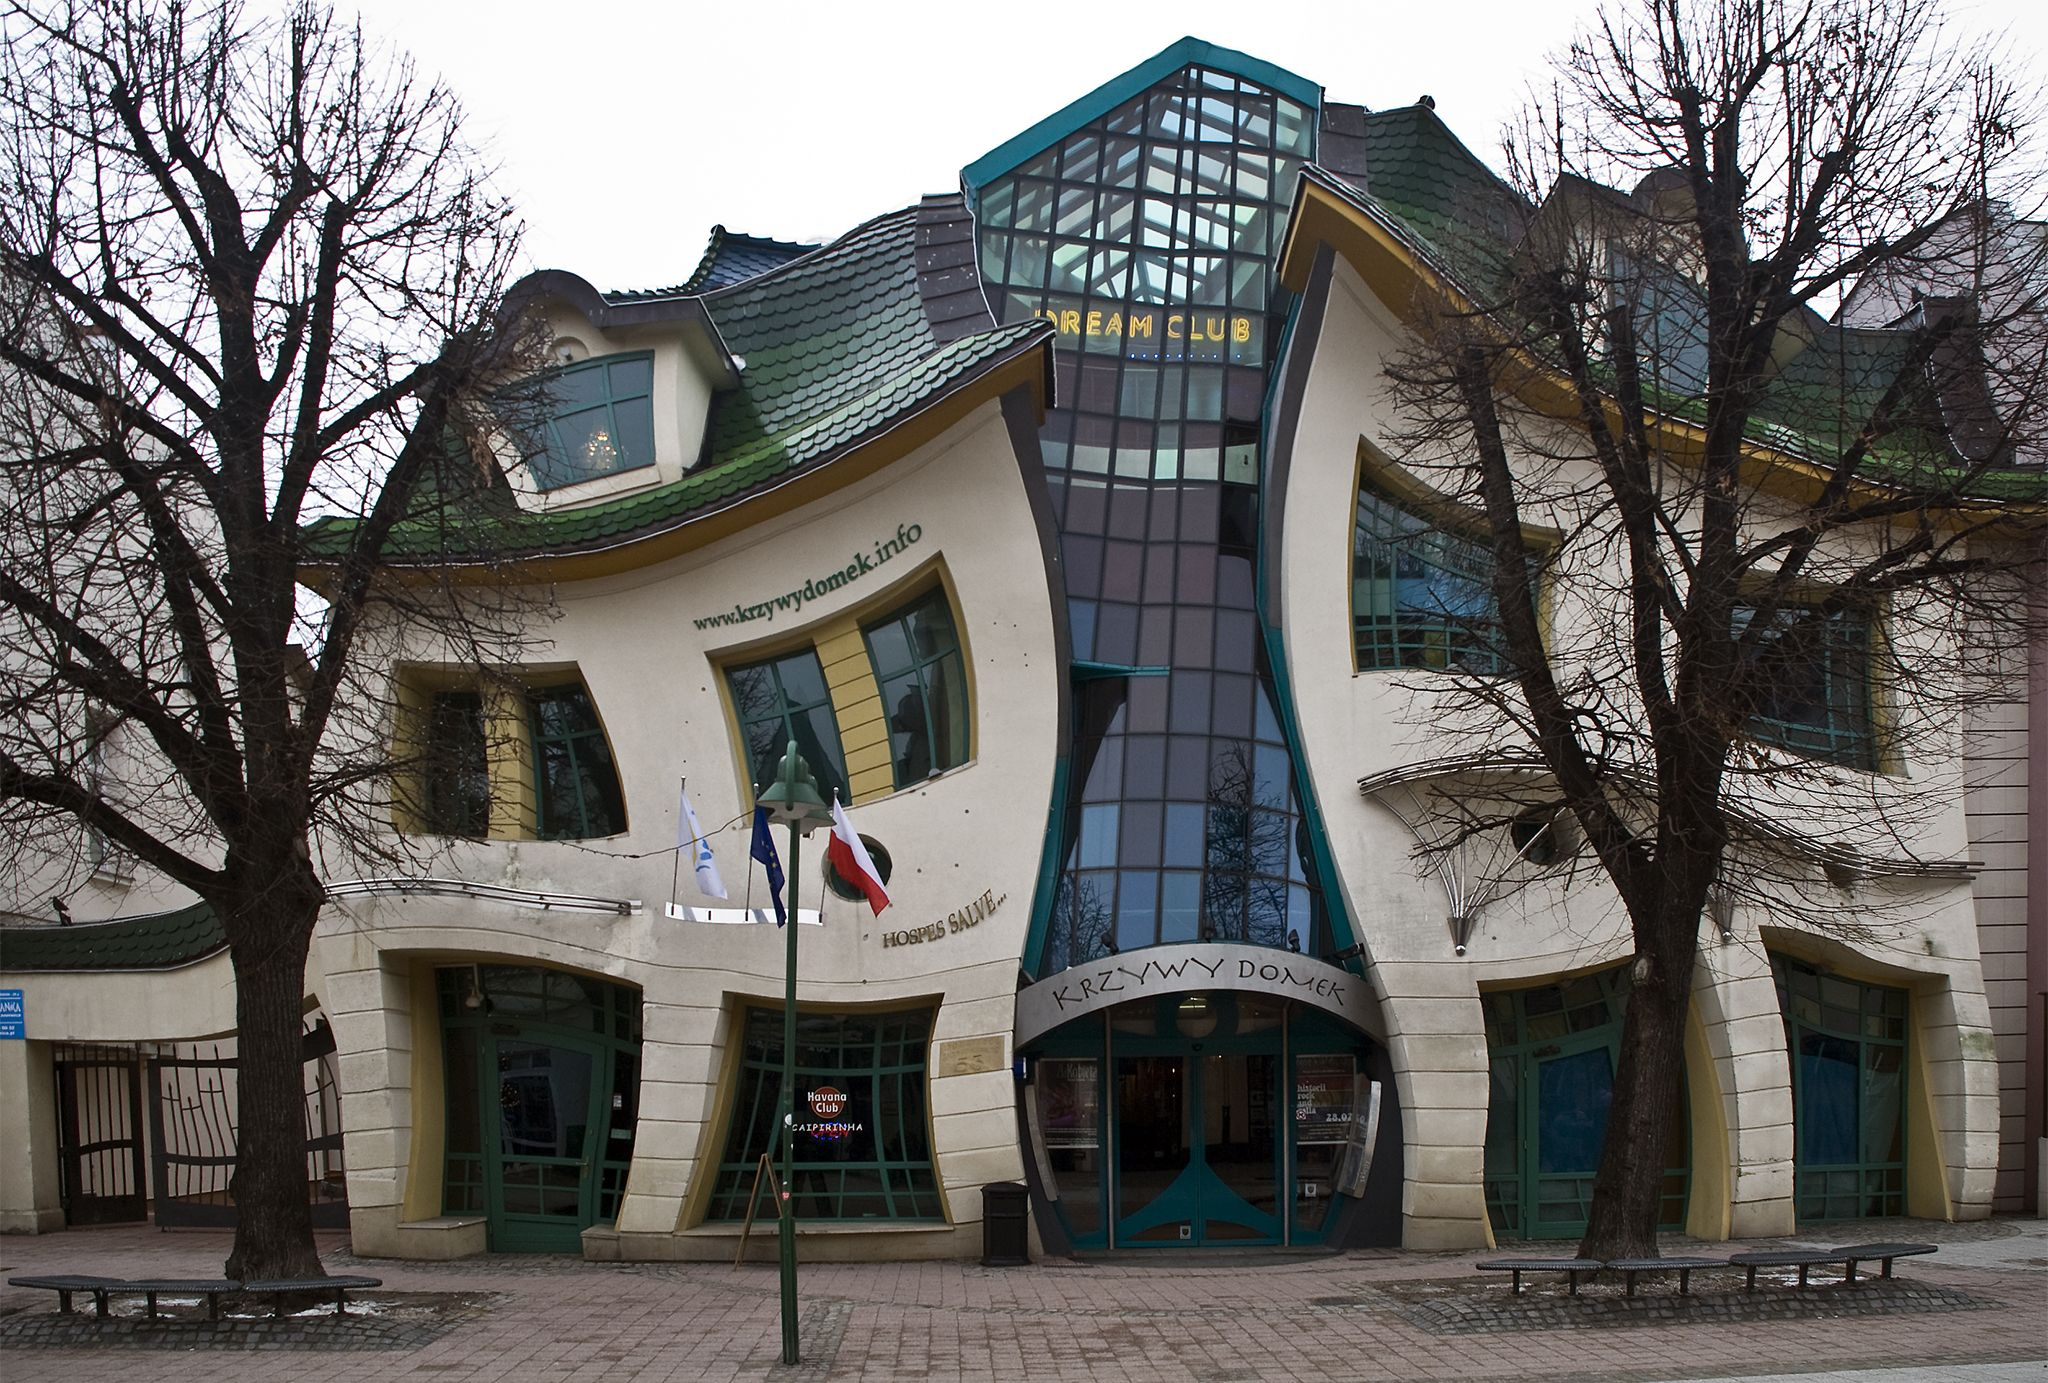 Top 10 Strangest Buildings in the World - The crooked house in Sopot ...